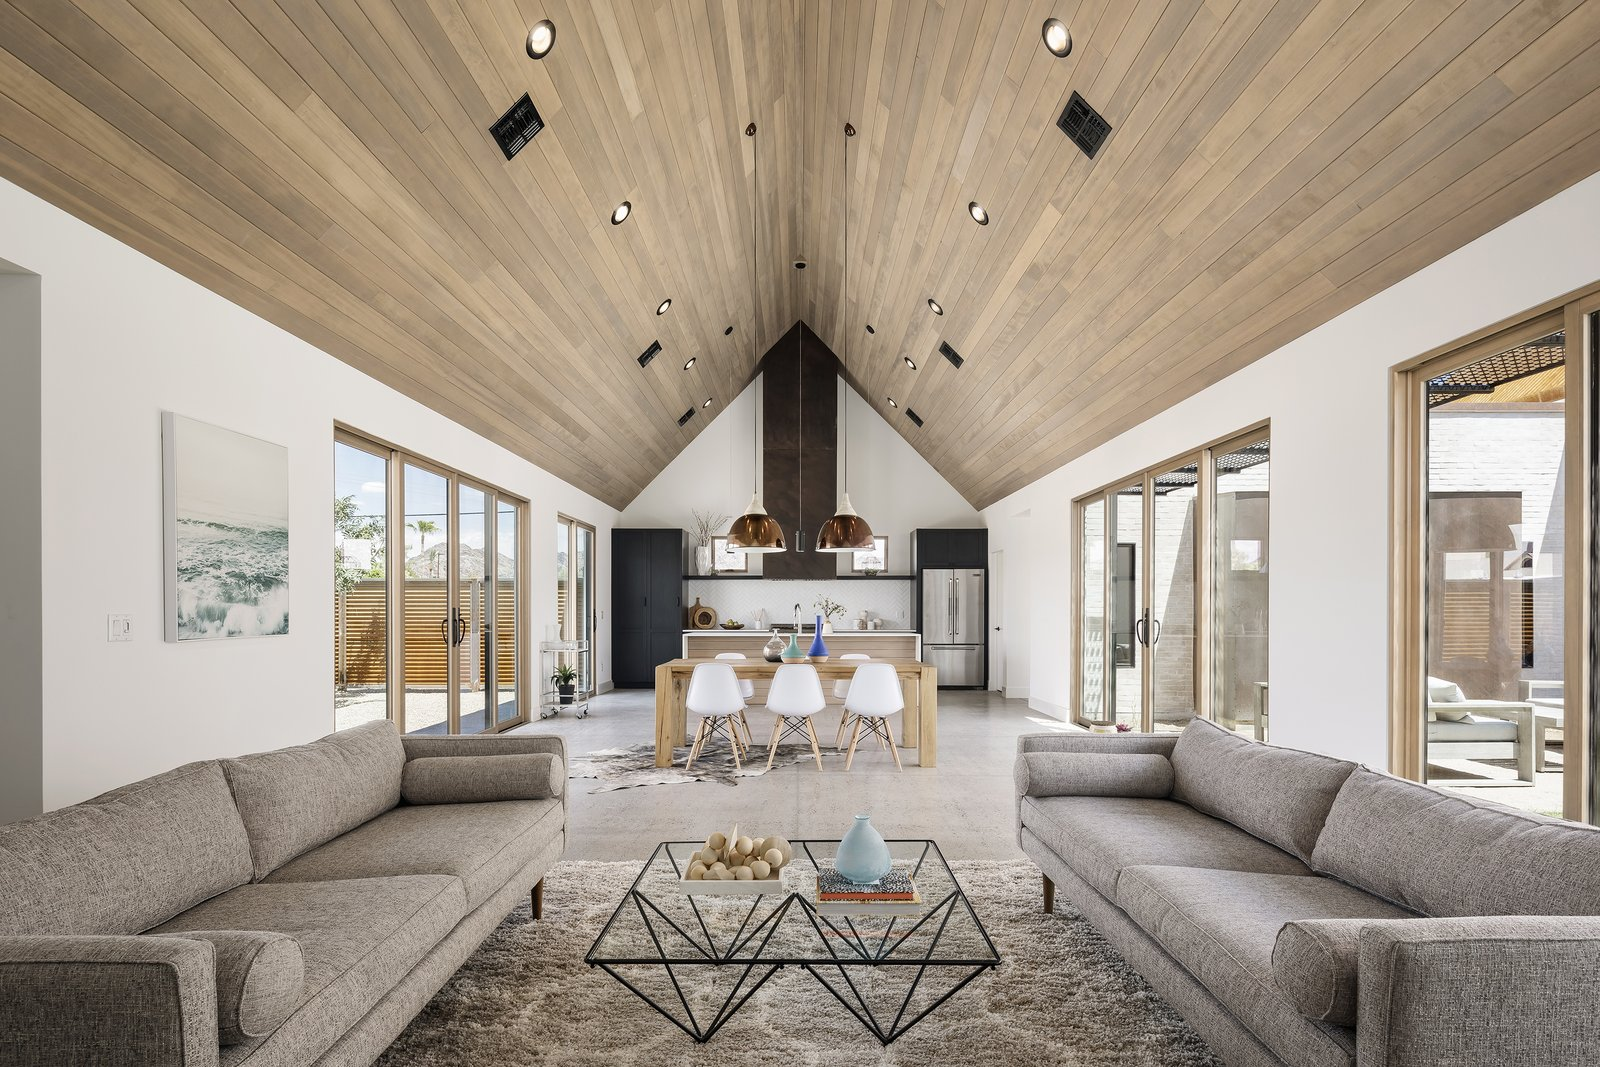 The great room is highlighted by a rusted metal custom hood at the end of the space, with courtyards on both sides Tagged: Living Room, Ceiling Lighting, Pendant Lighting, Coffee Tables, and Sofa.  Canal House by The Ranch Mine